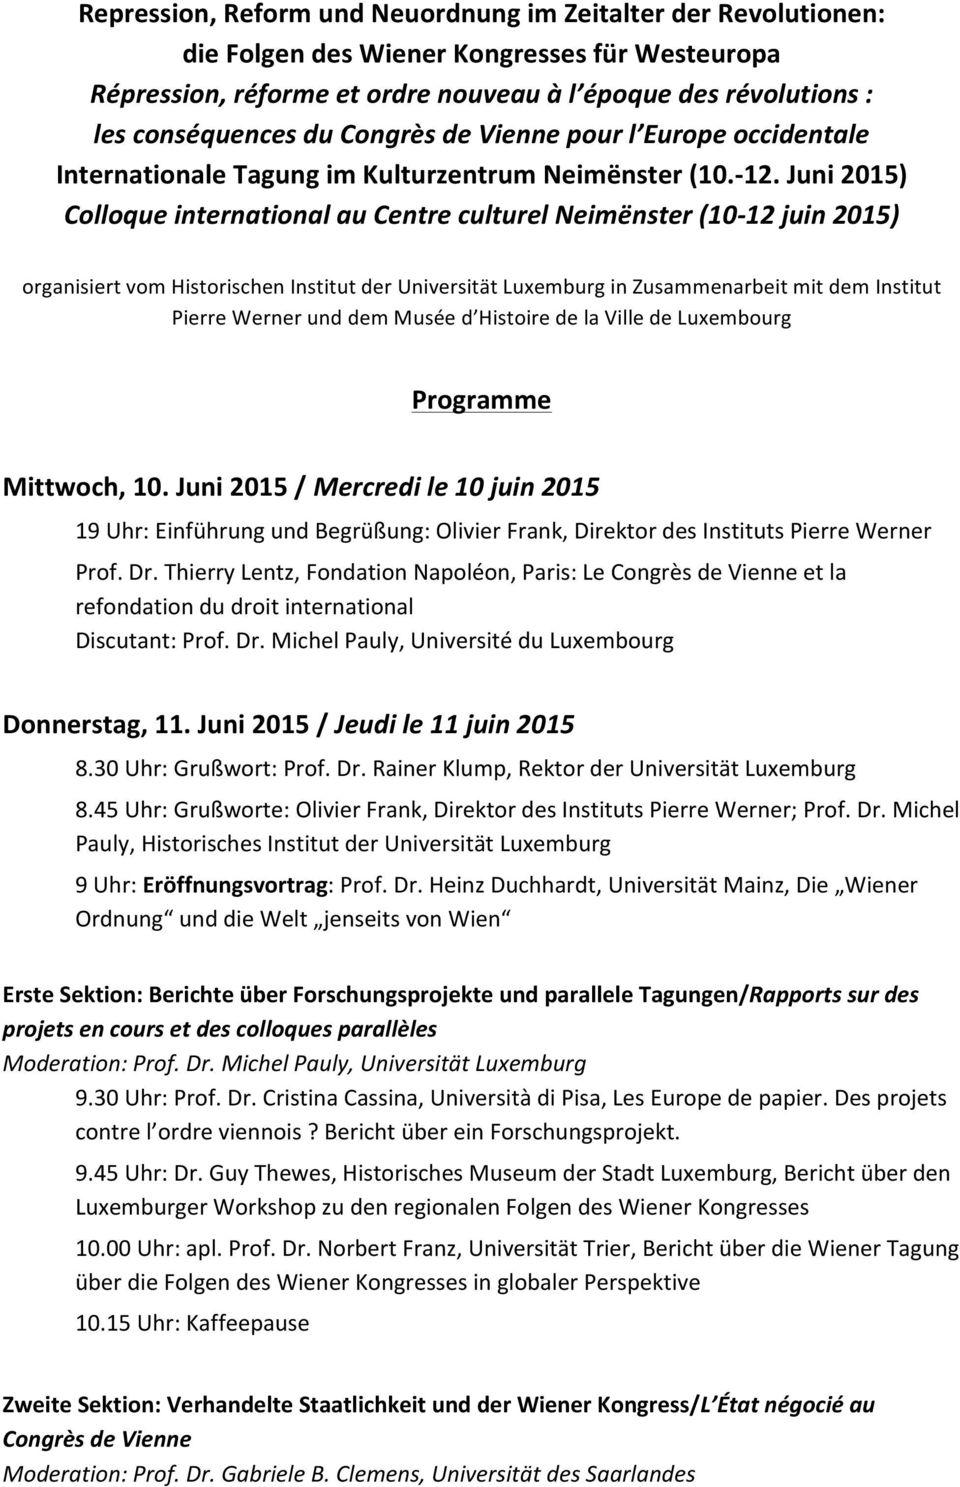 Juni 2015) Colloque international au Centre culturel Neimënster (10-12 juin 2015) organisiert vom Historischen Institut der Universität Luxemburg in Zusammenarbeit mit dem Institut Pierre Werner und